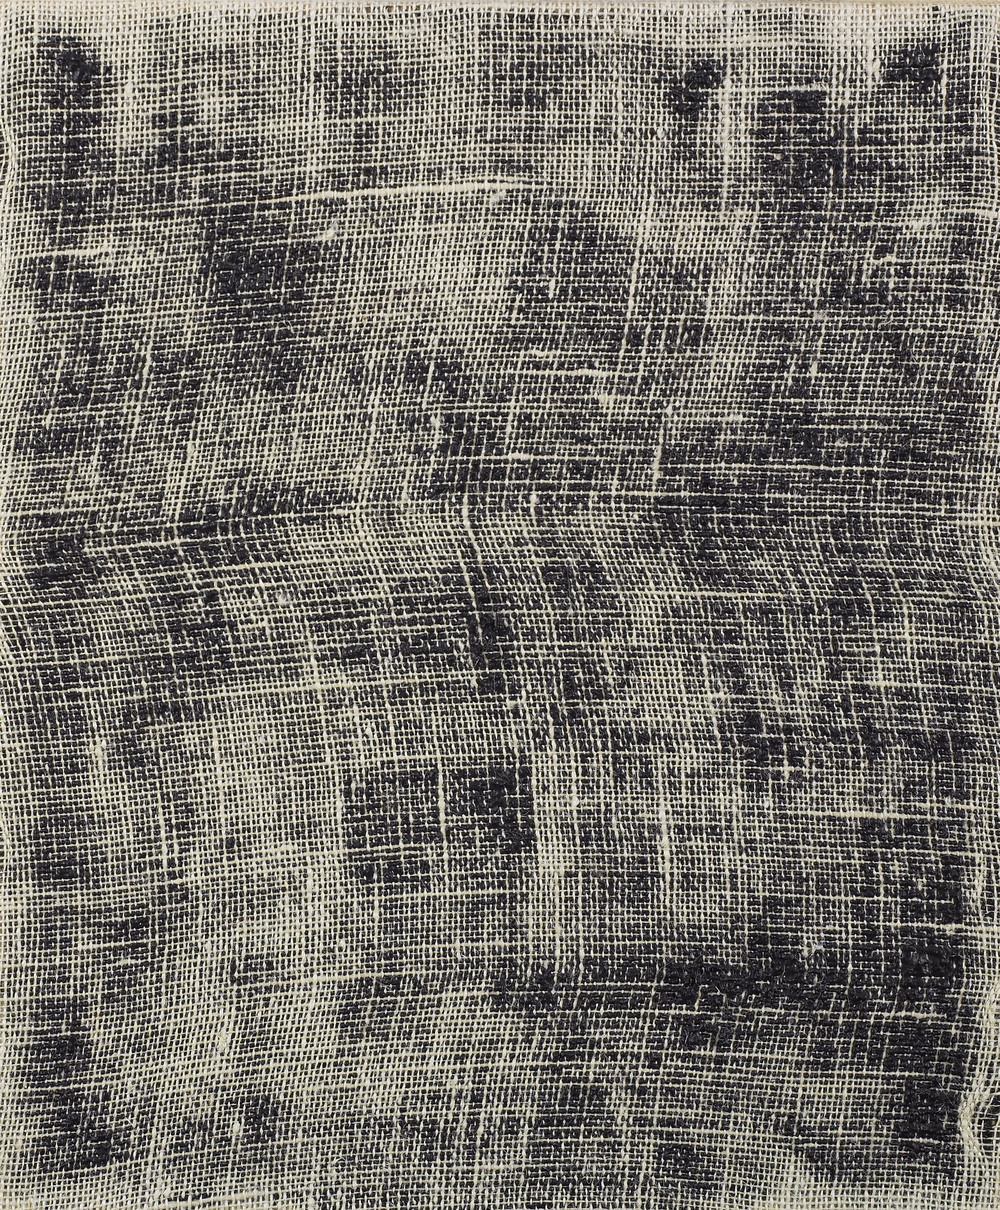 Porosity (Black II), 2014  , acrylic on burlap, 20 x 16 inches